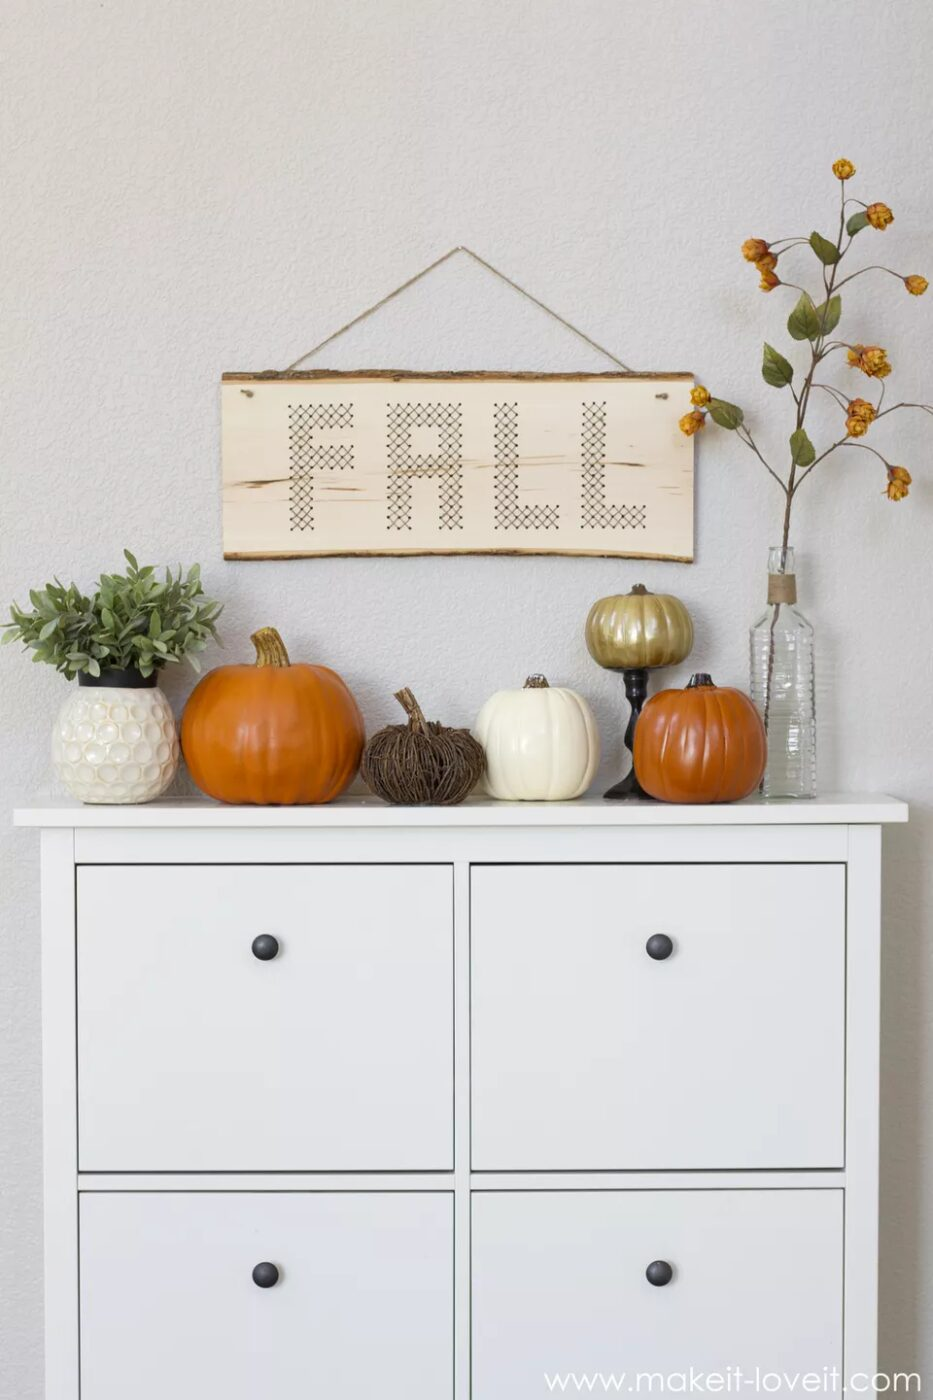 DIY Wood Plank Cross Stitch Fall Decor